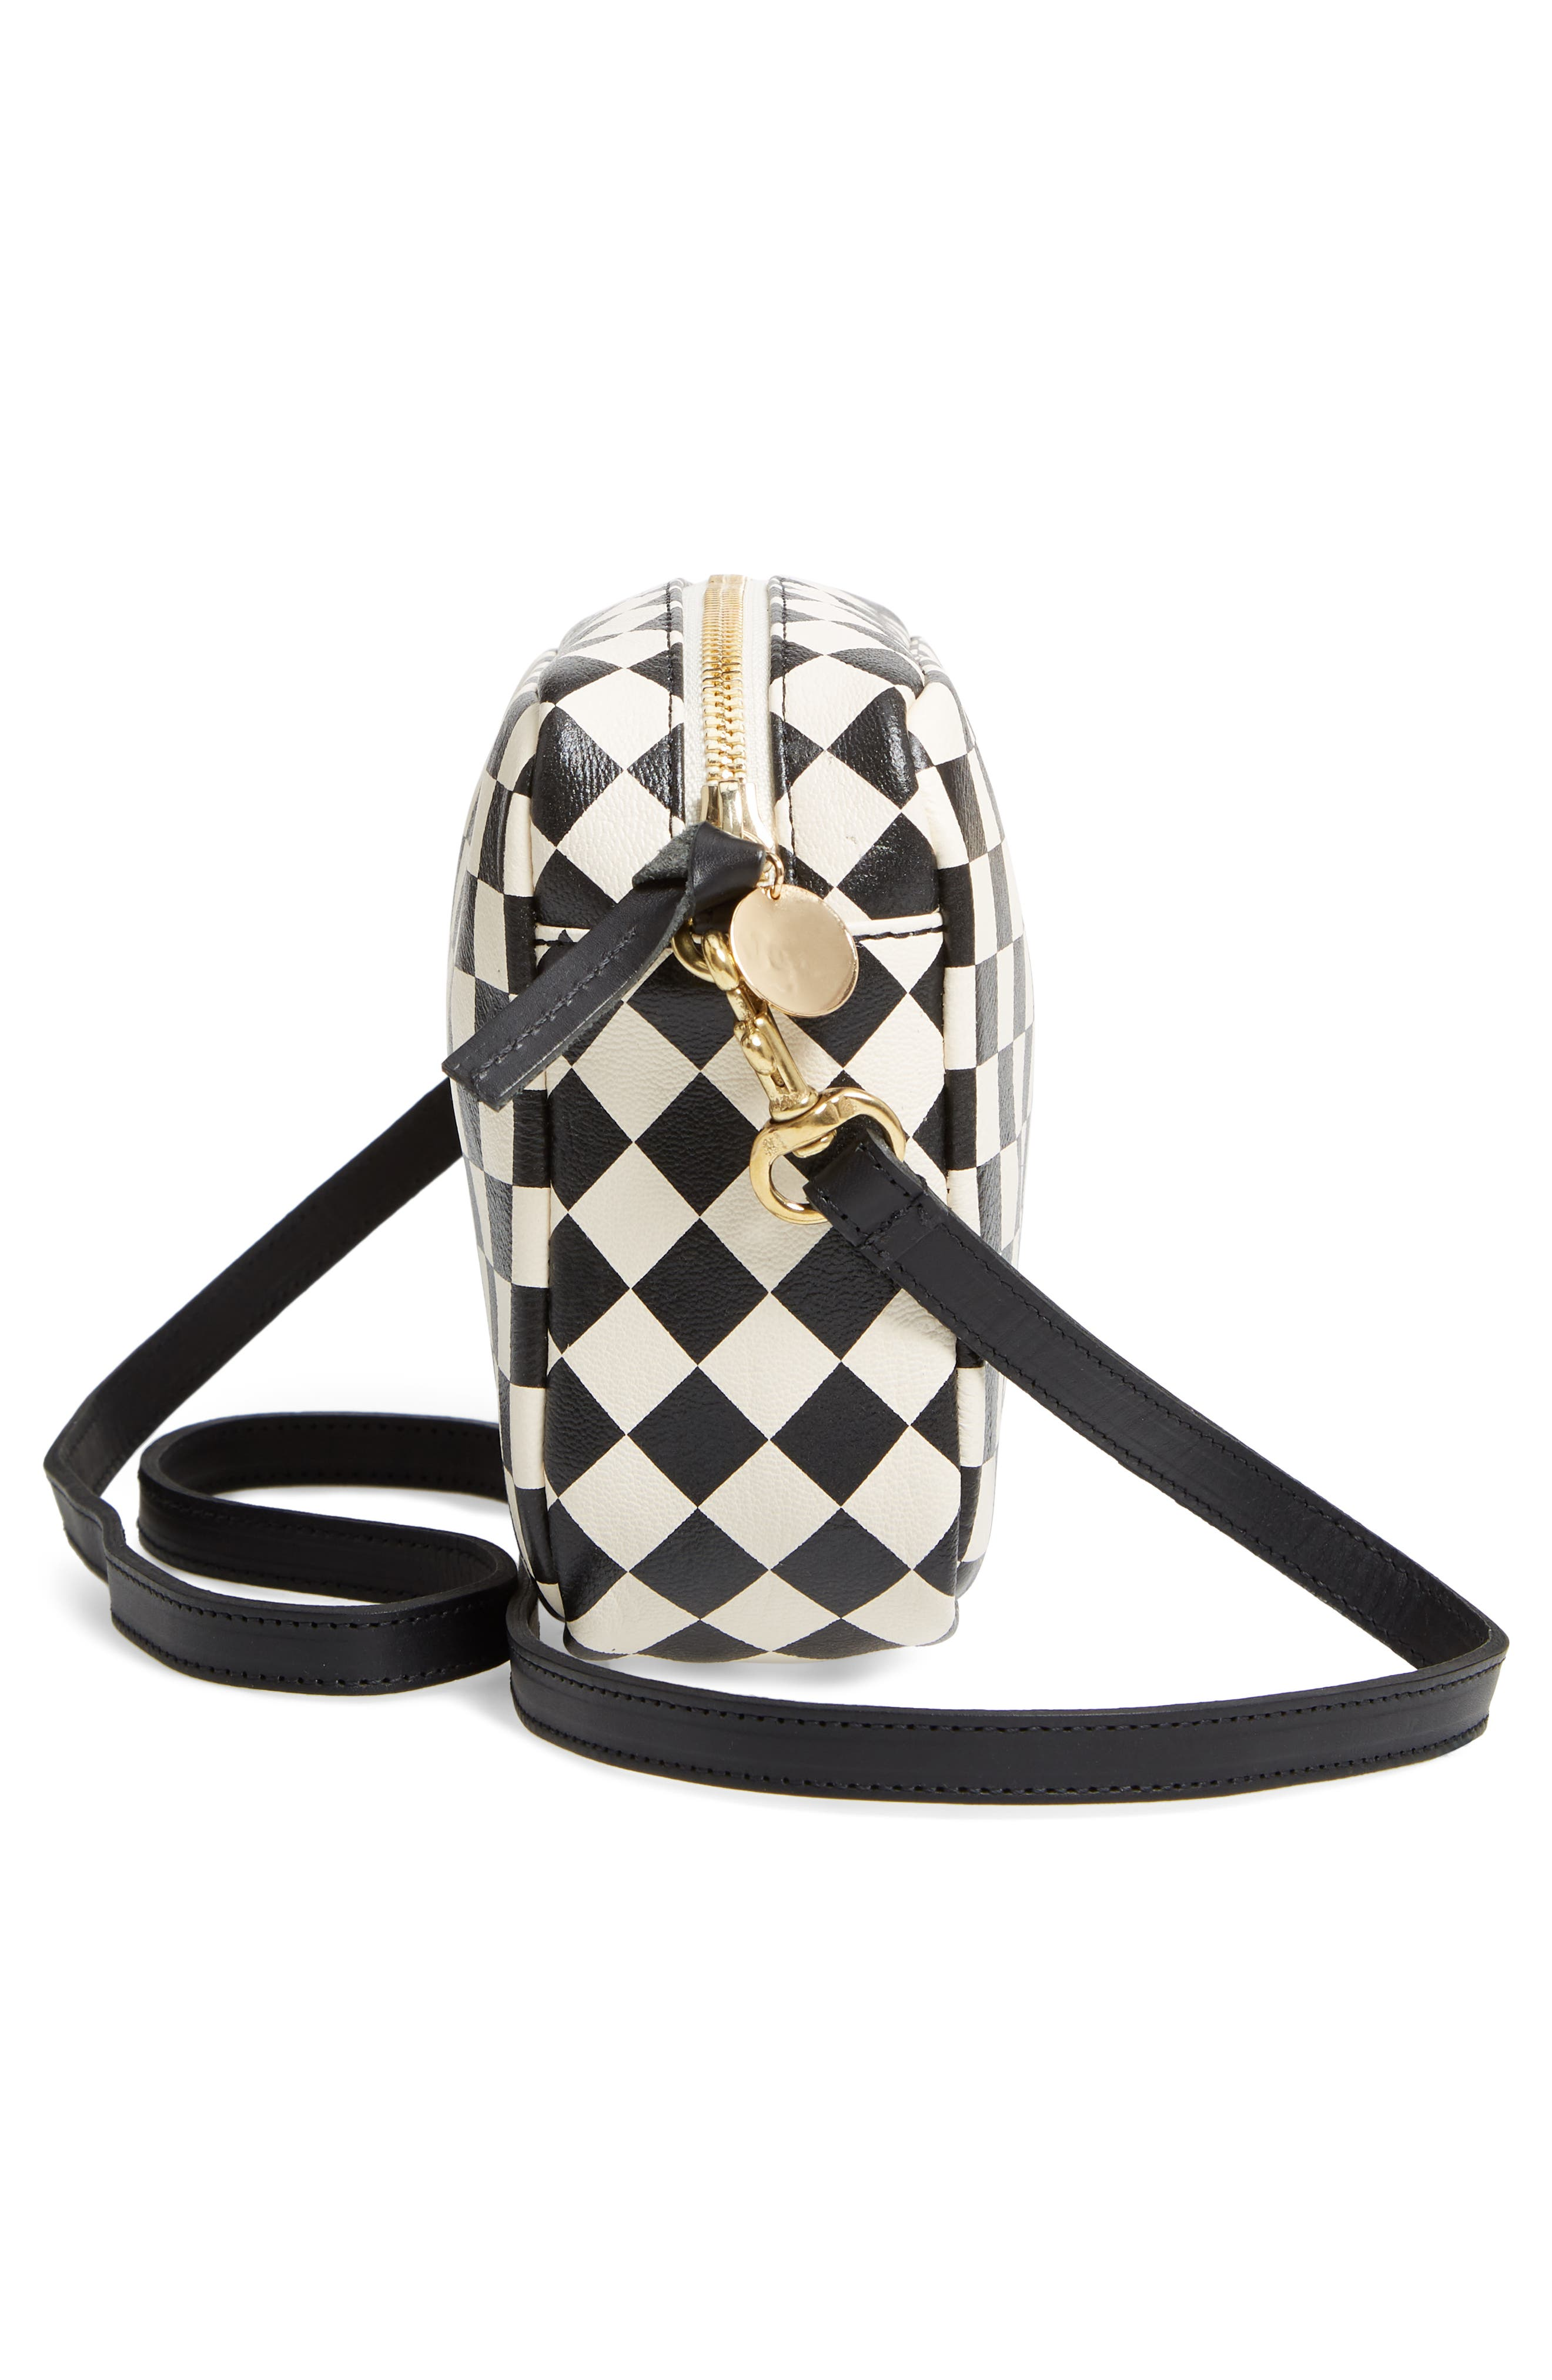 Midi Sac Check Leather Shoulder Bag,                             Alternate thumbnail 5, color,                             CREAM/ BLACK CHECKERS